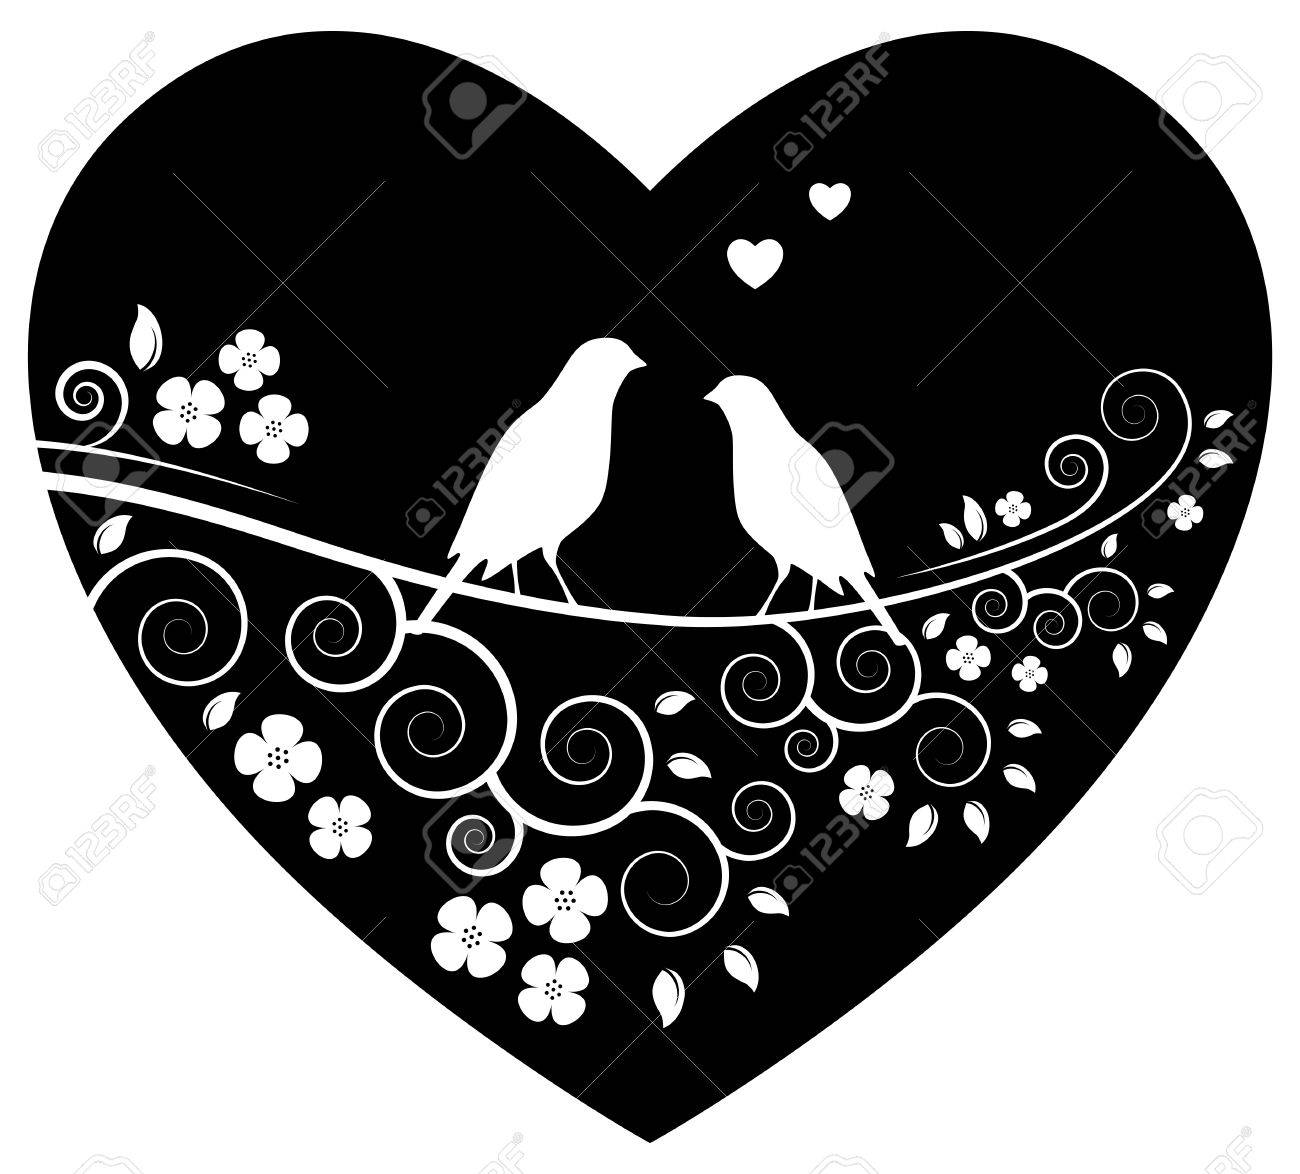 Love Birds On Flowering Branch In Heart Isolated On White Background Royalty Free Cliparts Vectors And Stock Illustration Image 32557298